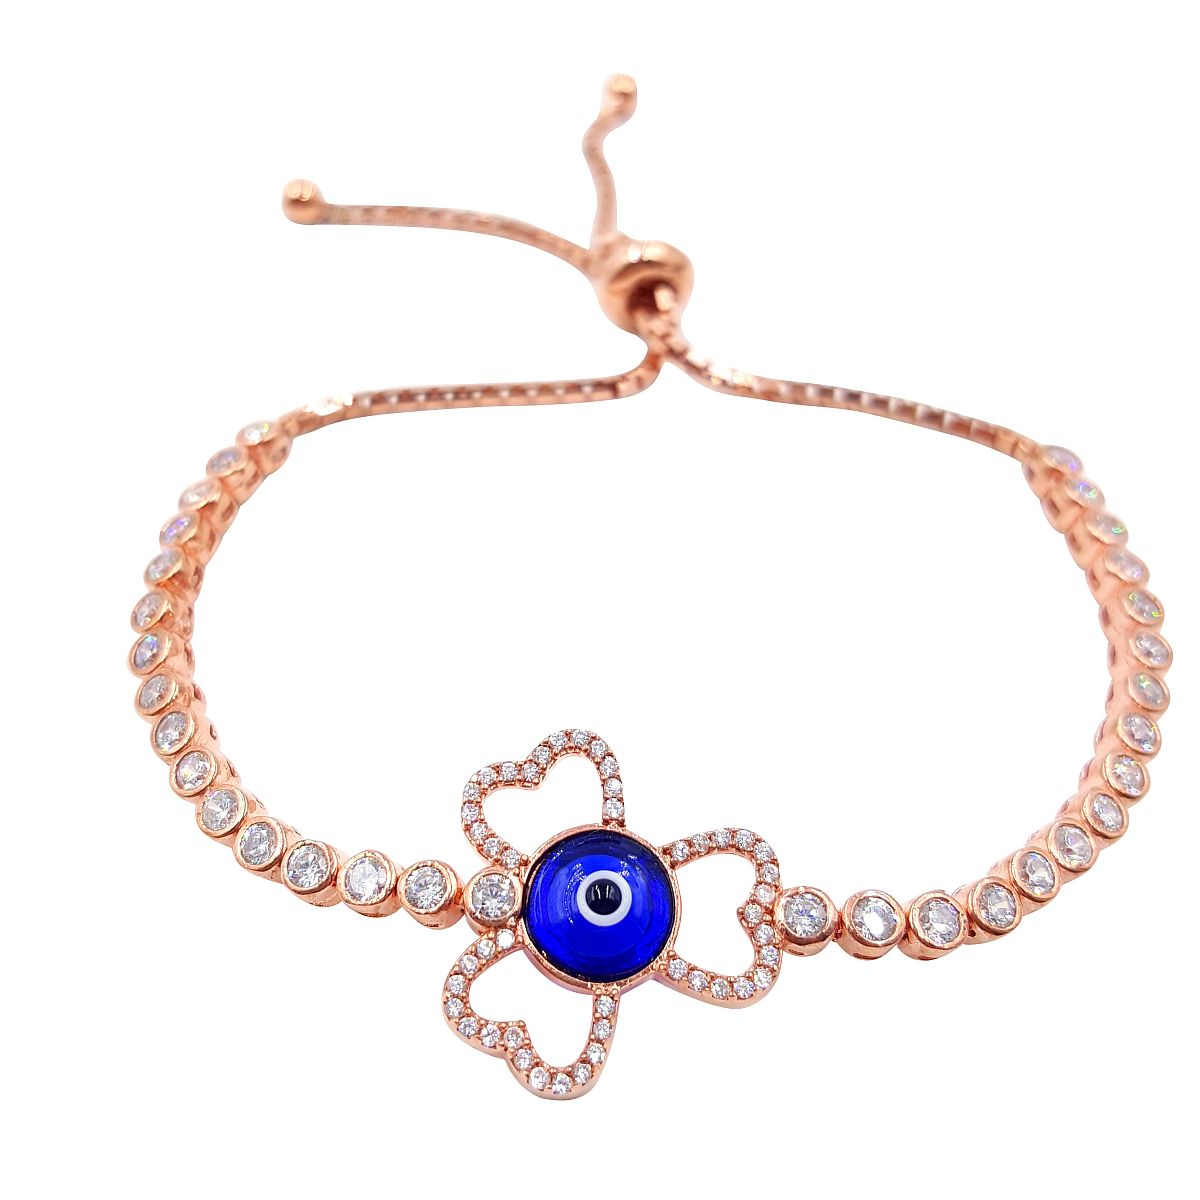 Gold over Sterling Silver Evil Eye Bracelet CMB20159393-2